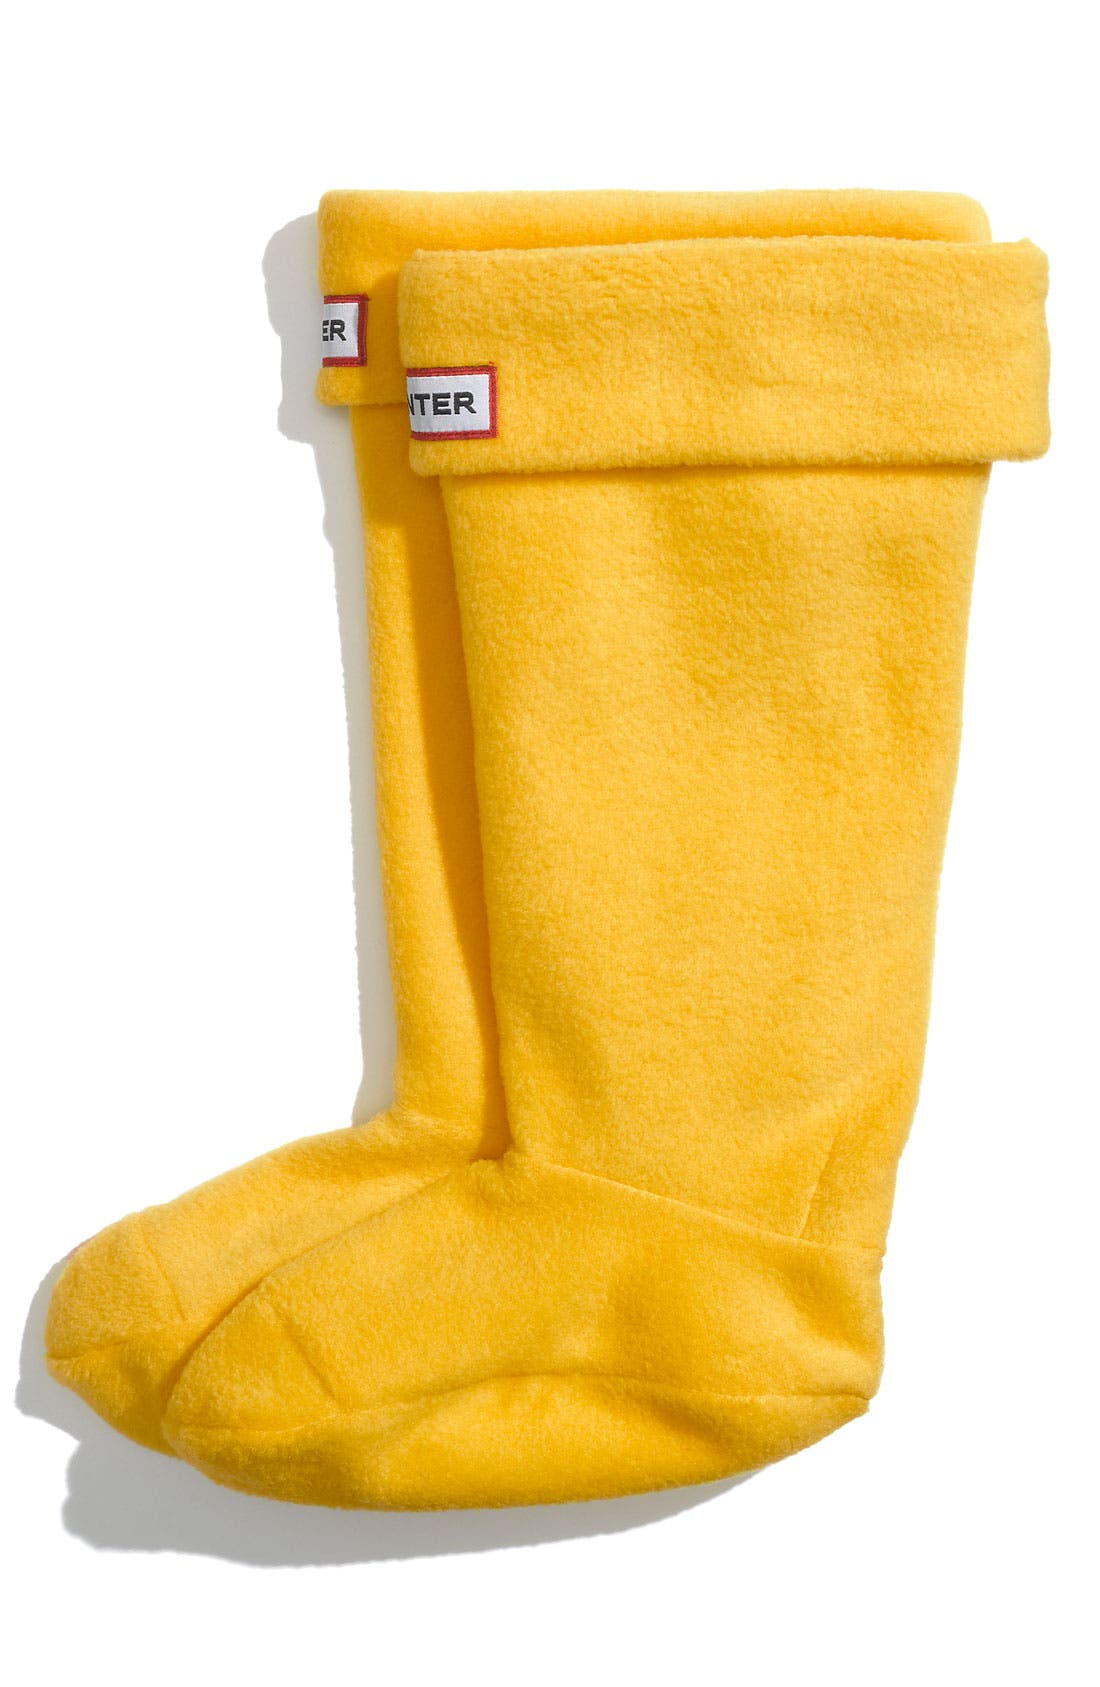 Alternate Image 1 Selected - Hunter Fleece Welly Socks (Baby Girls, Toddler Girls, Little Girls & Big Girls)